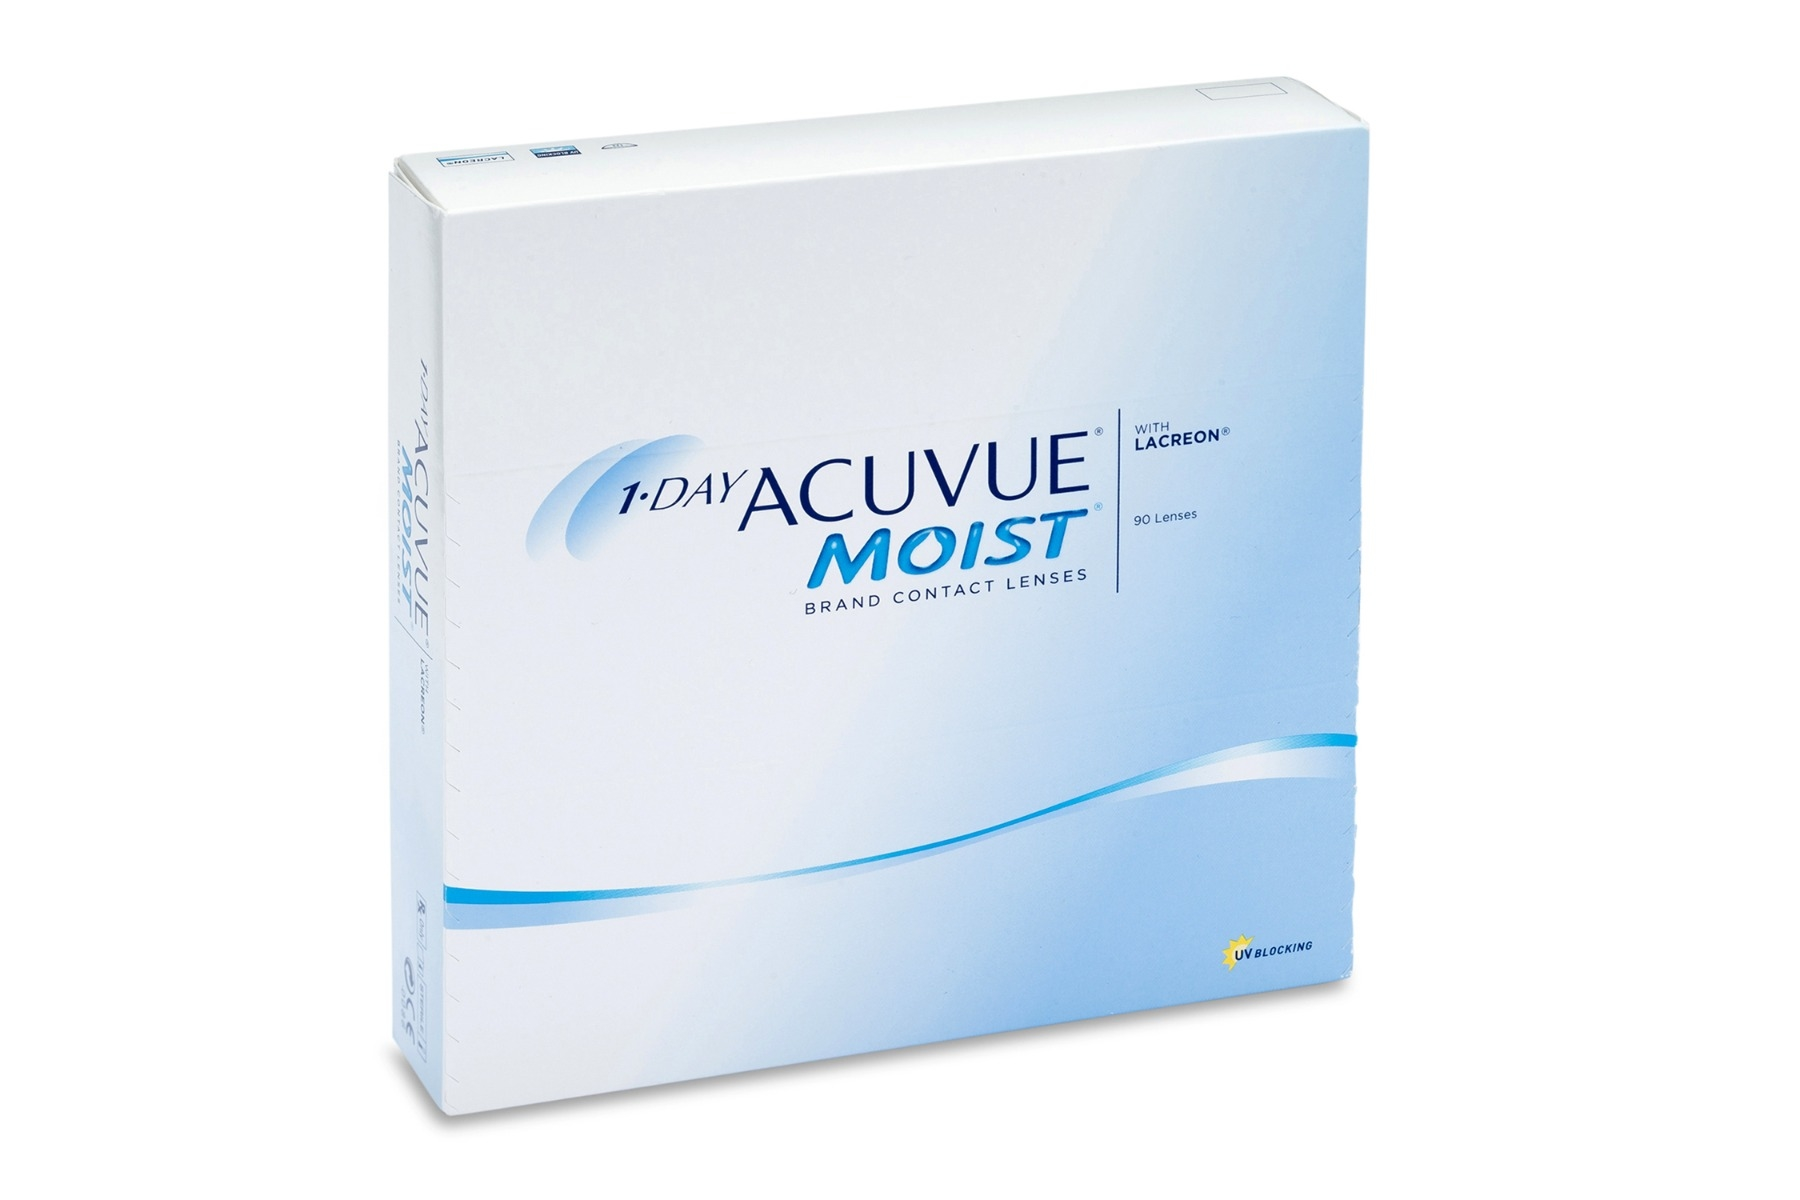 1 Day Acuvue Moist Contact Lenses 90 Pack Buy Online